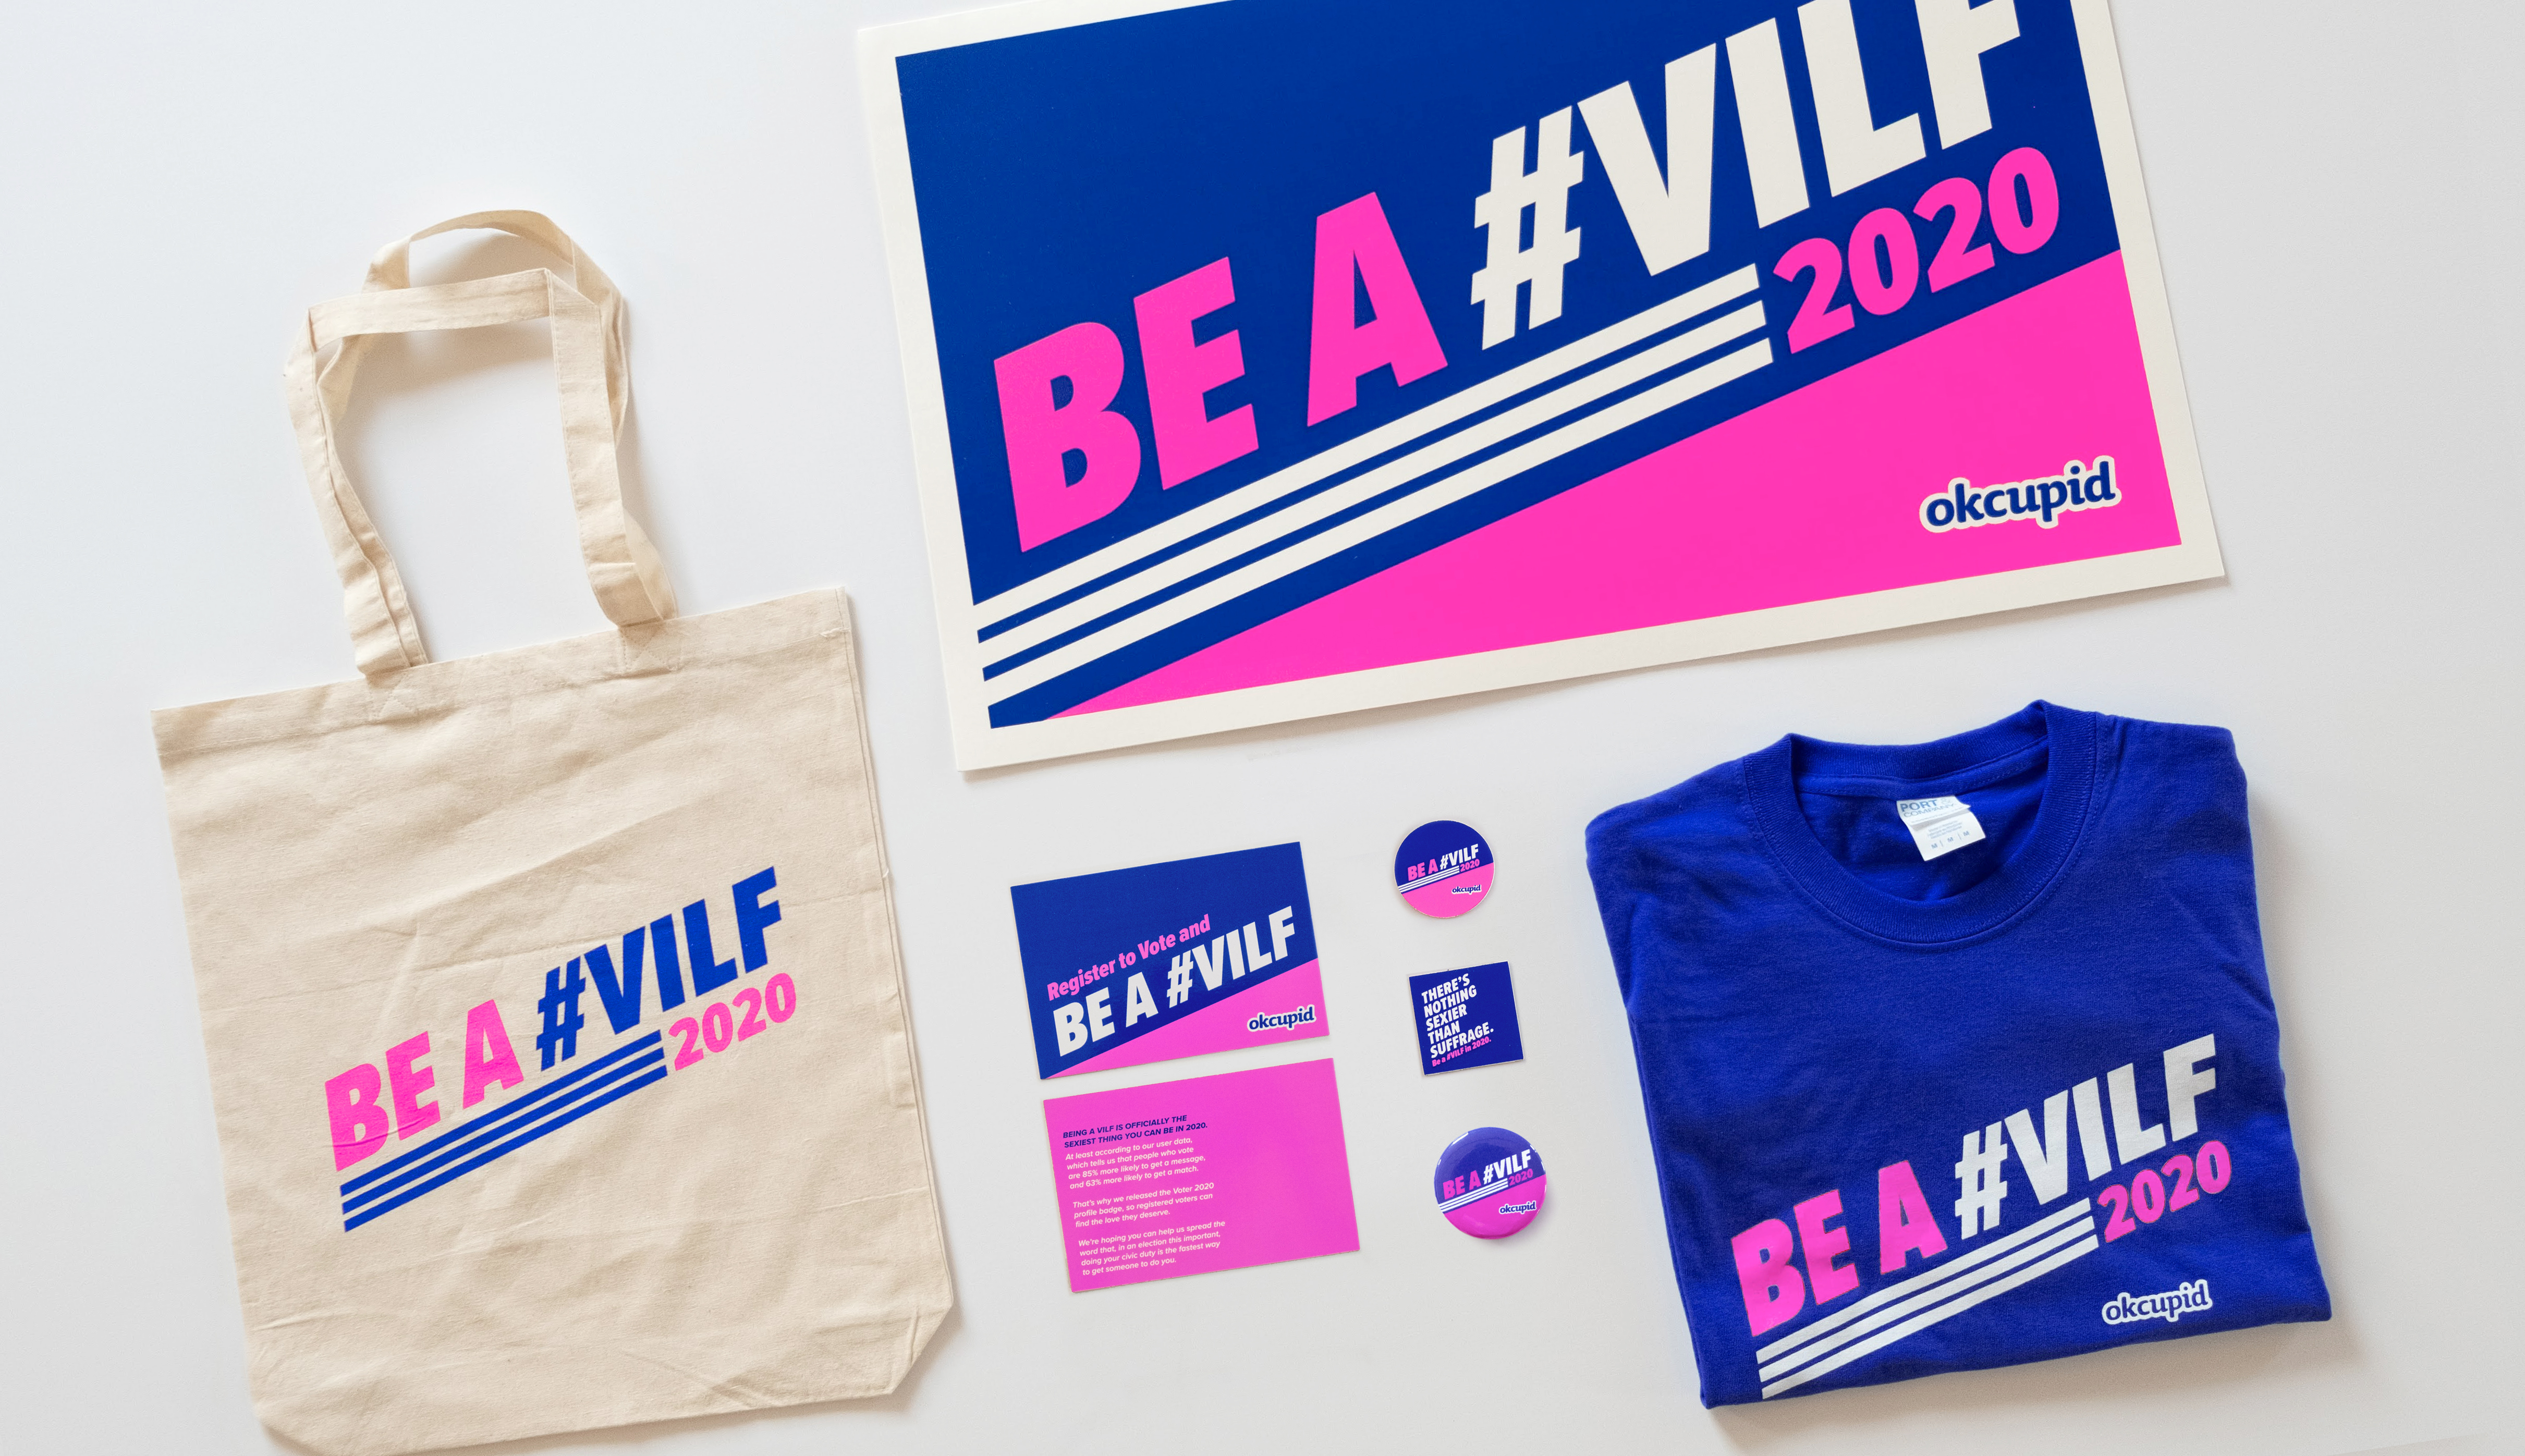 vilf swag for campaign